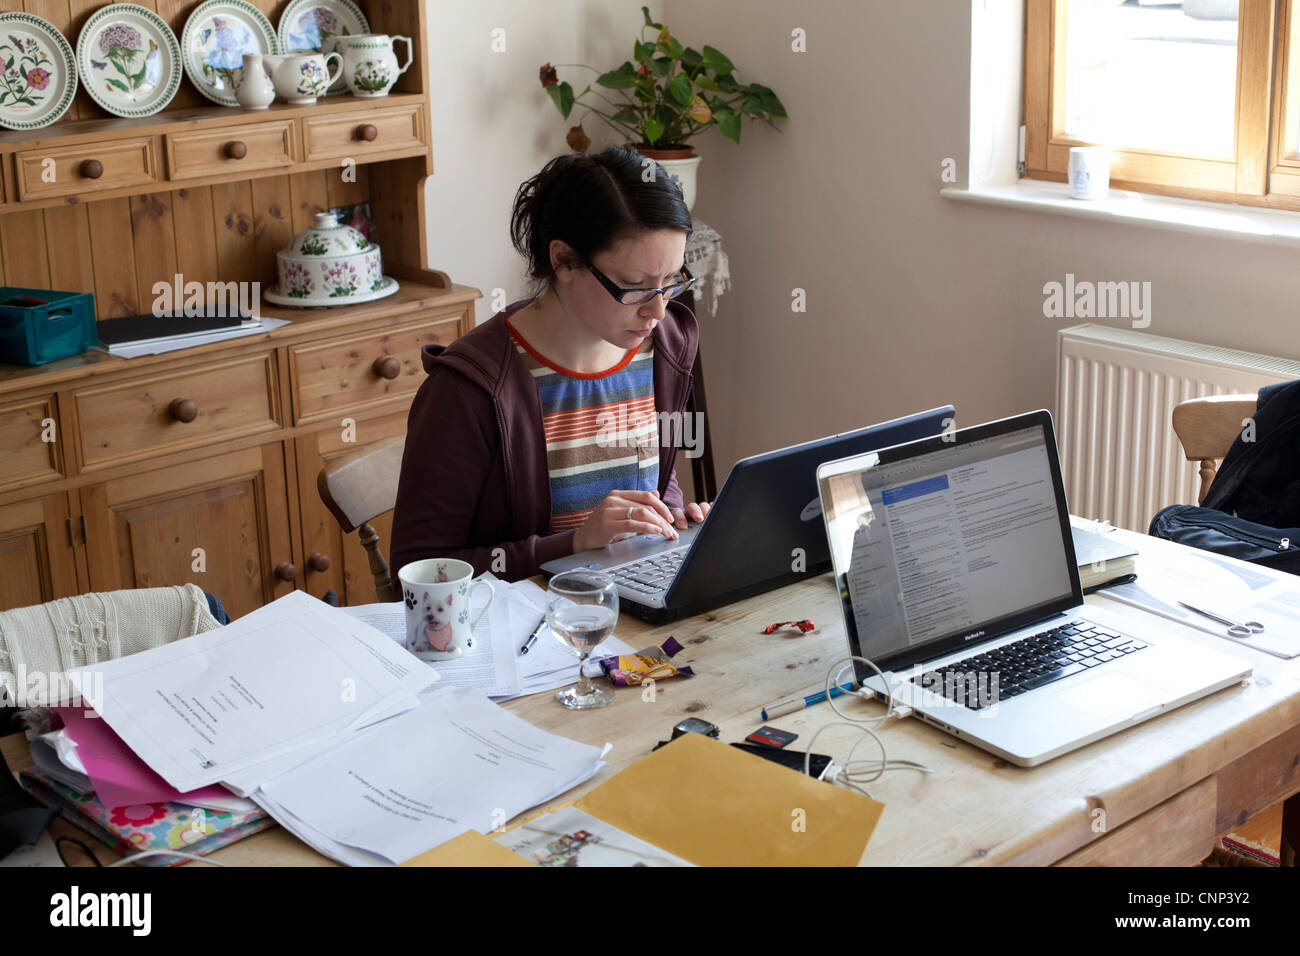 A Female student studies hard for her final exams - Stock Image